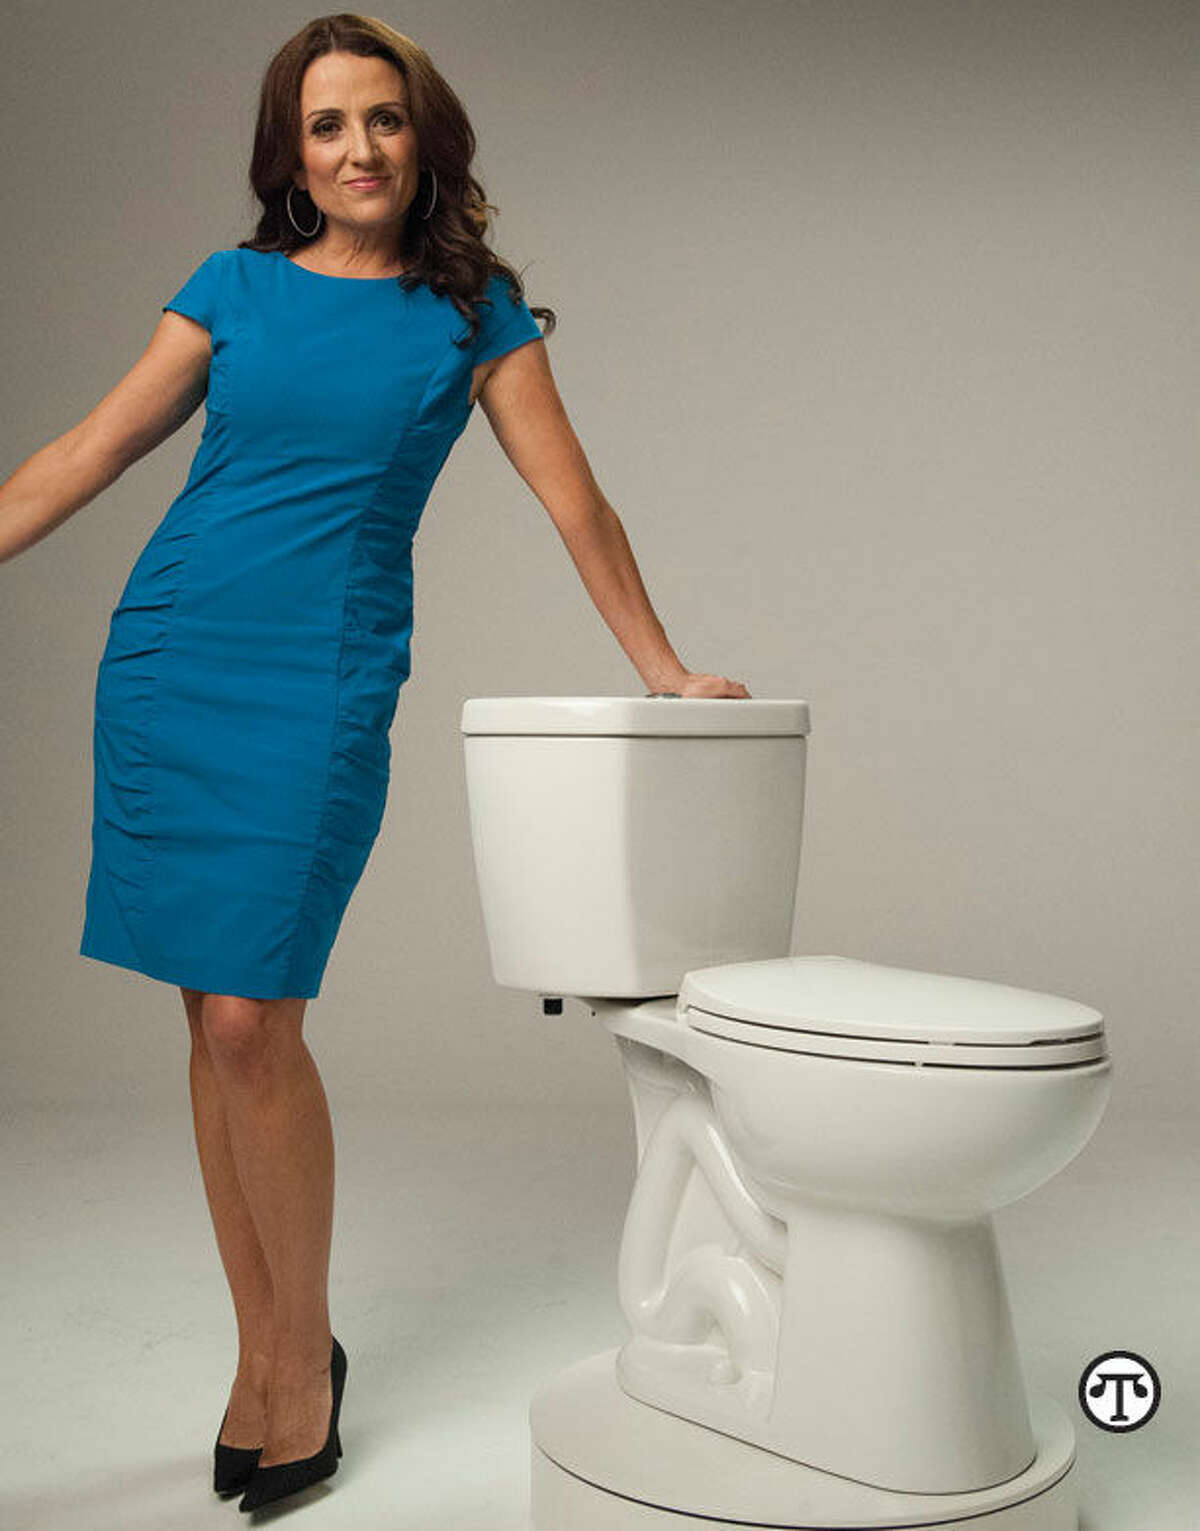 When it comes to saving water and money, a new device can have you flushed with success. (NAPS)